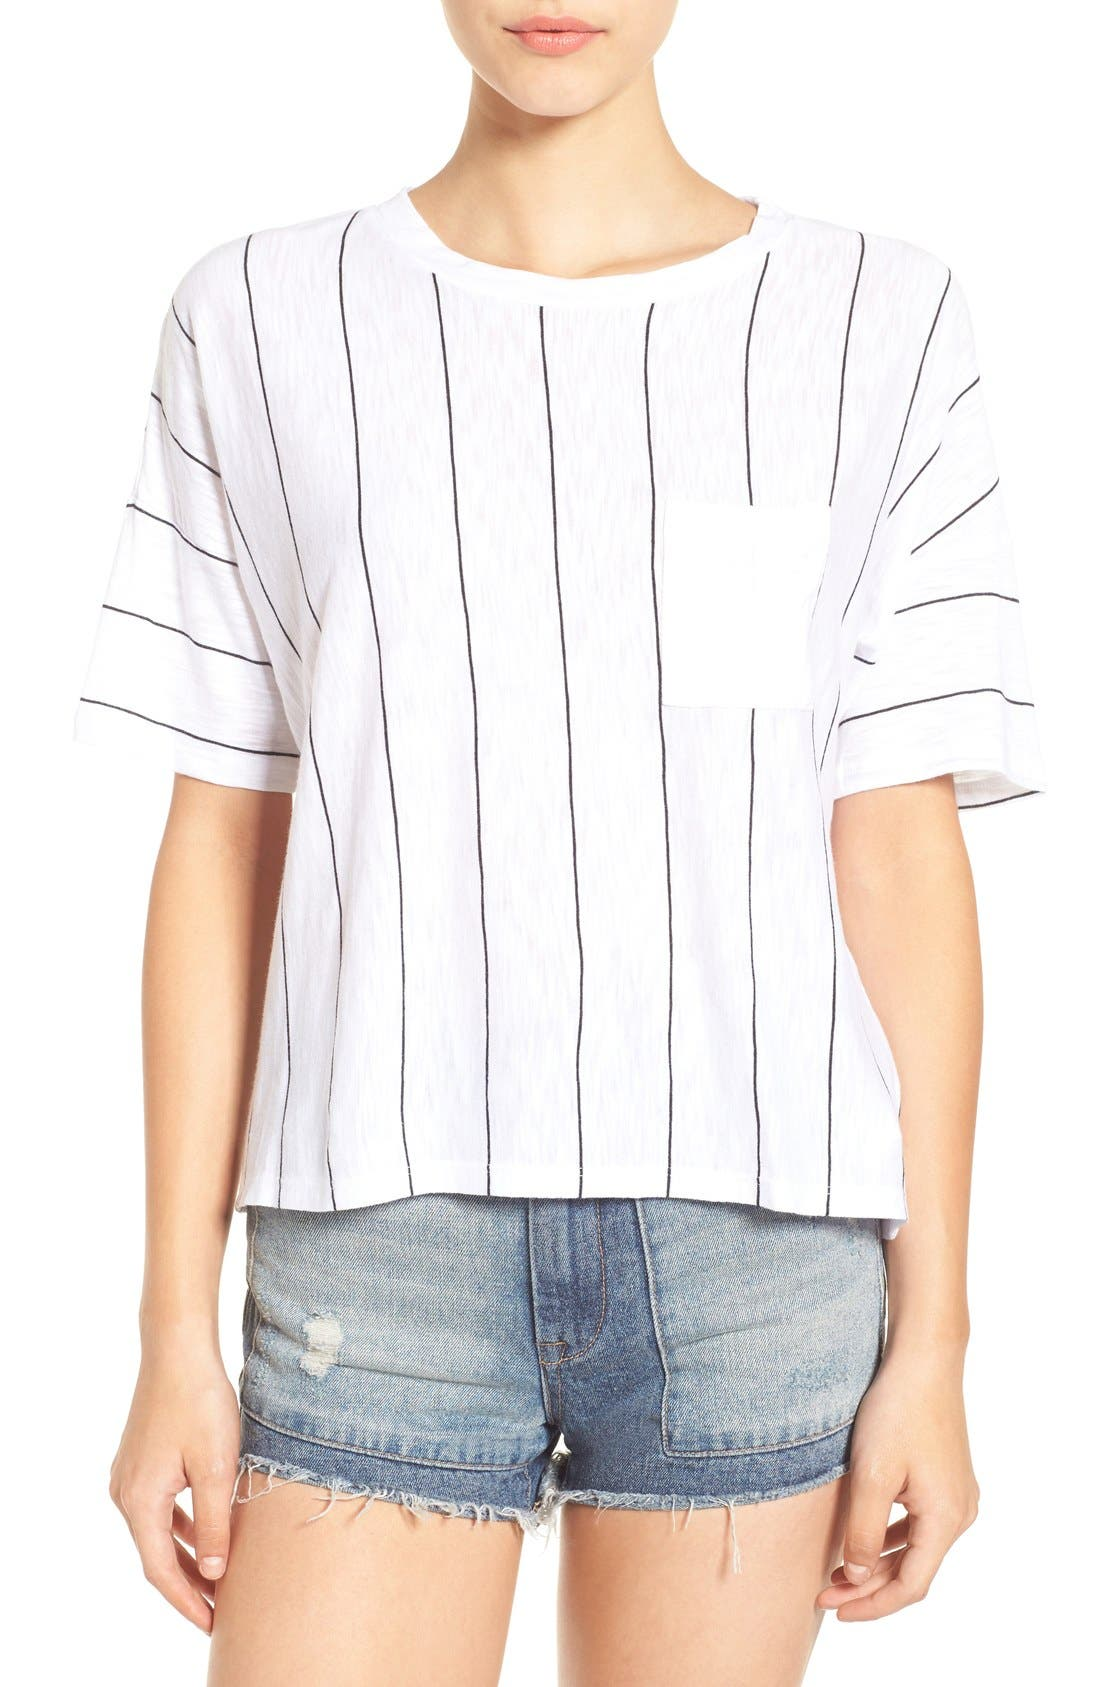 Alternate Image 1 Selected - Michelle by Comune Sideways Stripe Boxy Tee